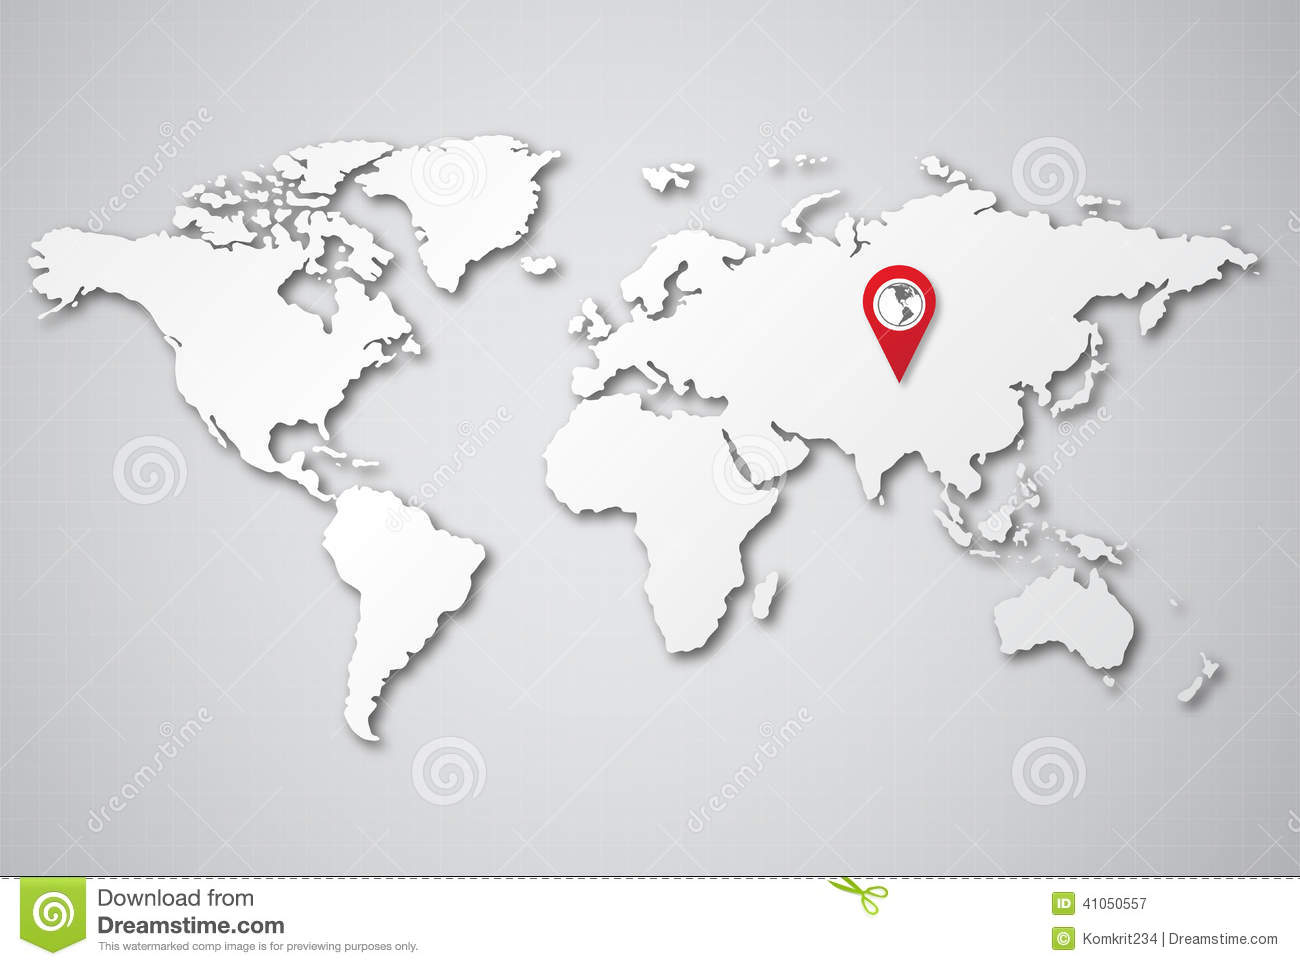 Background world map 3d stock vector illustration of design 41050557 background world map 3d royalty free vector gumiabroncs Image collections